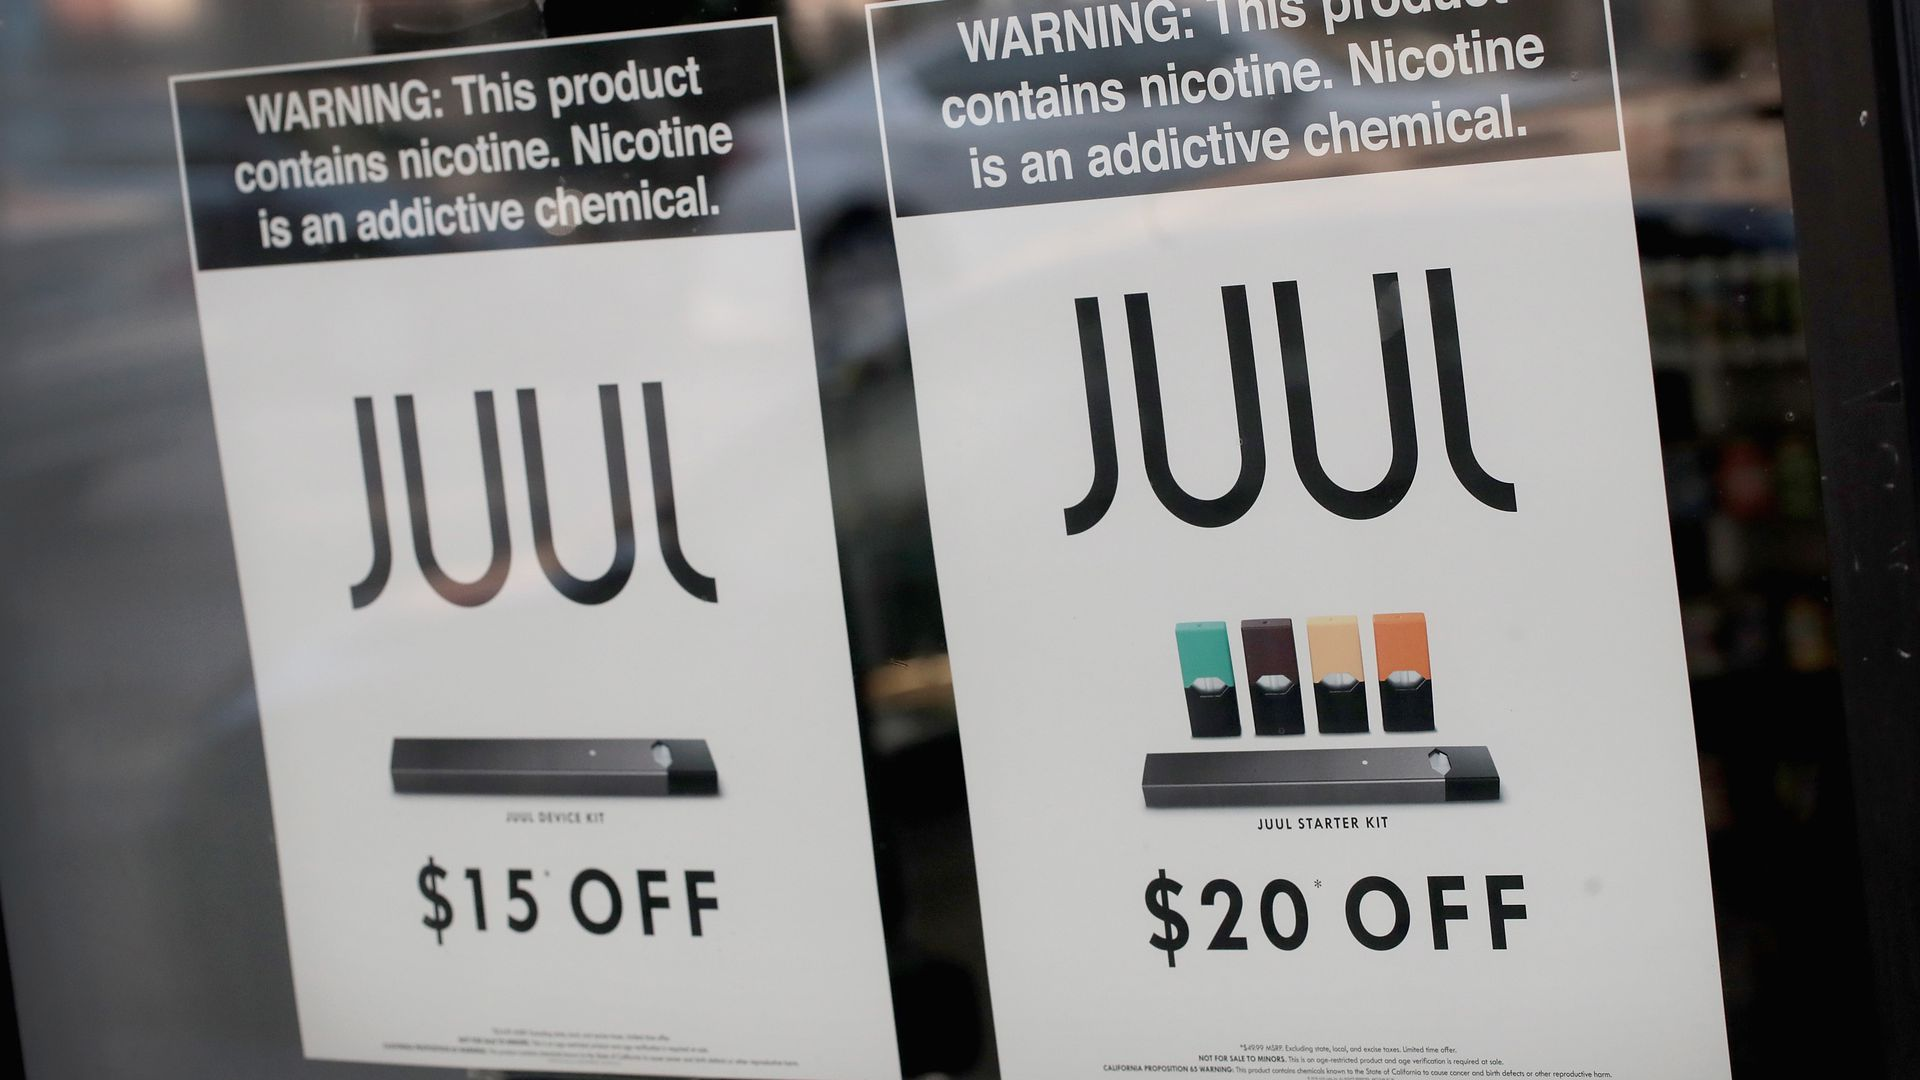 Juul signs at a storefront